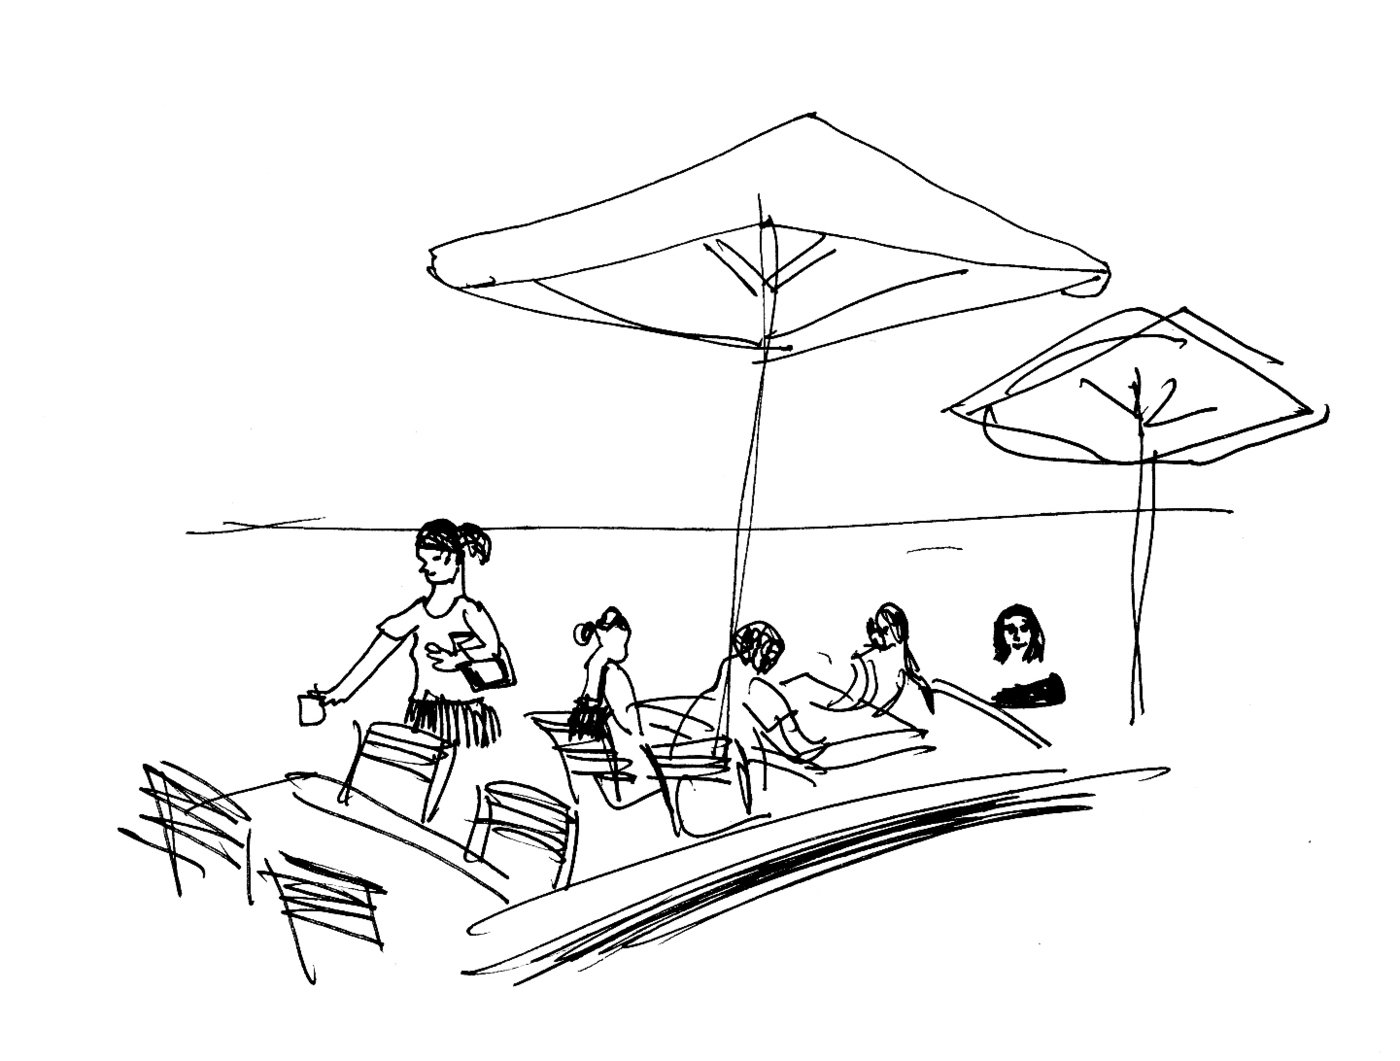 Drawings And Illustrations Created For The Manta Ray Restaurant Book Of Beach Waterfront Scenes Outside